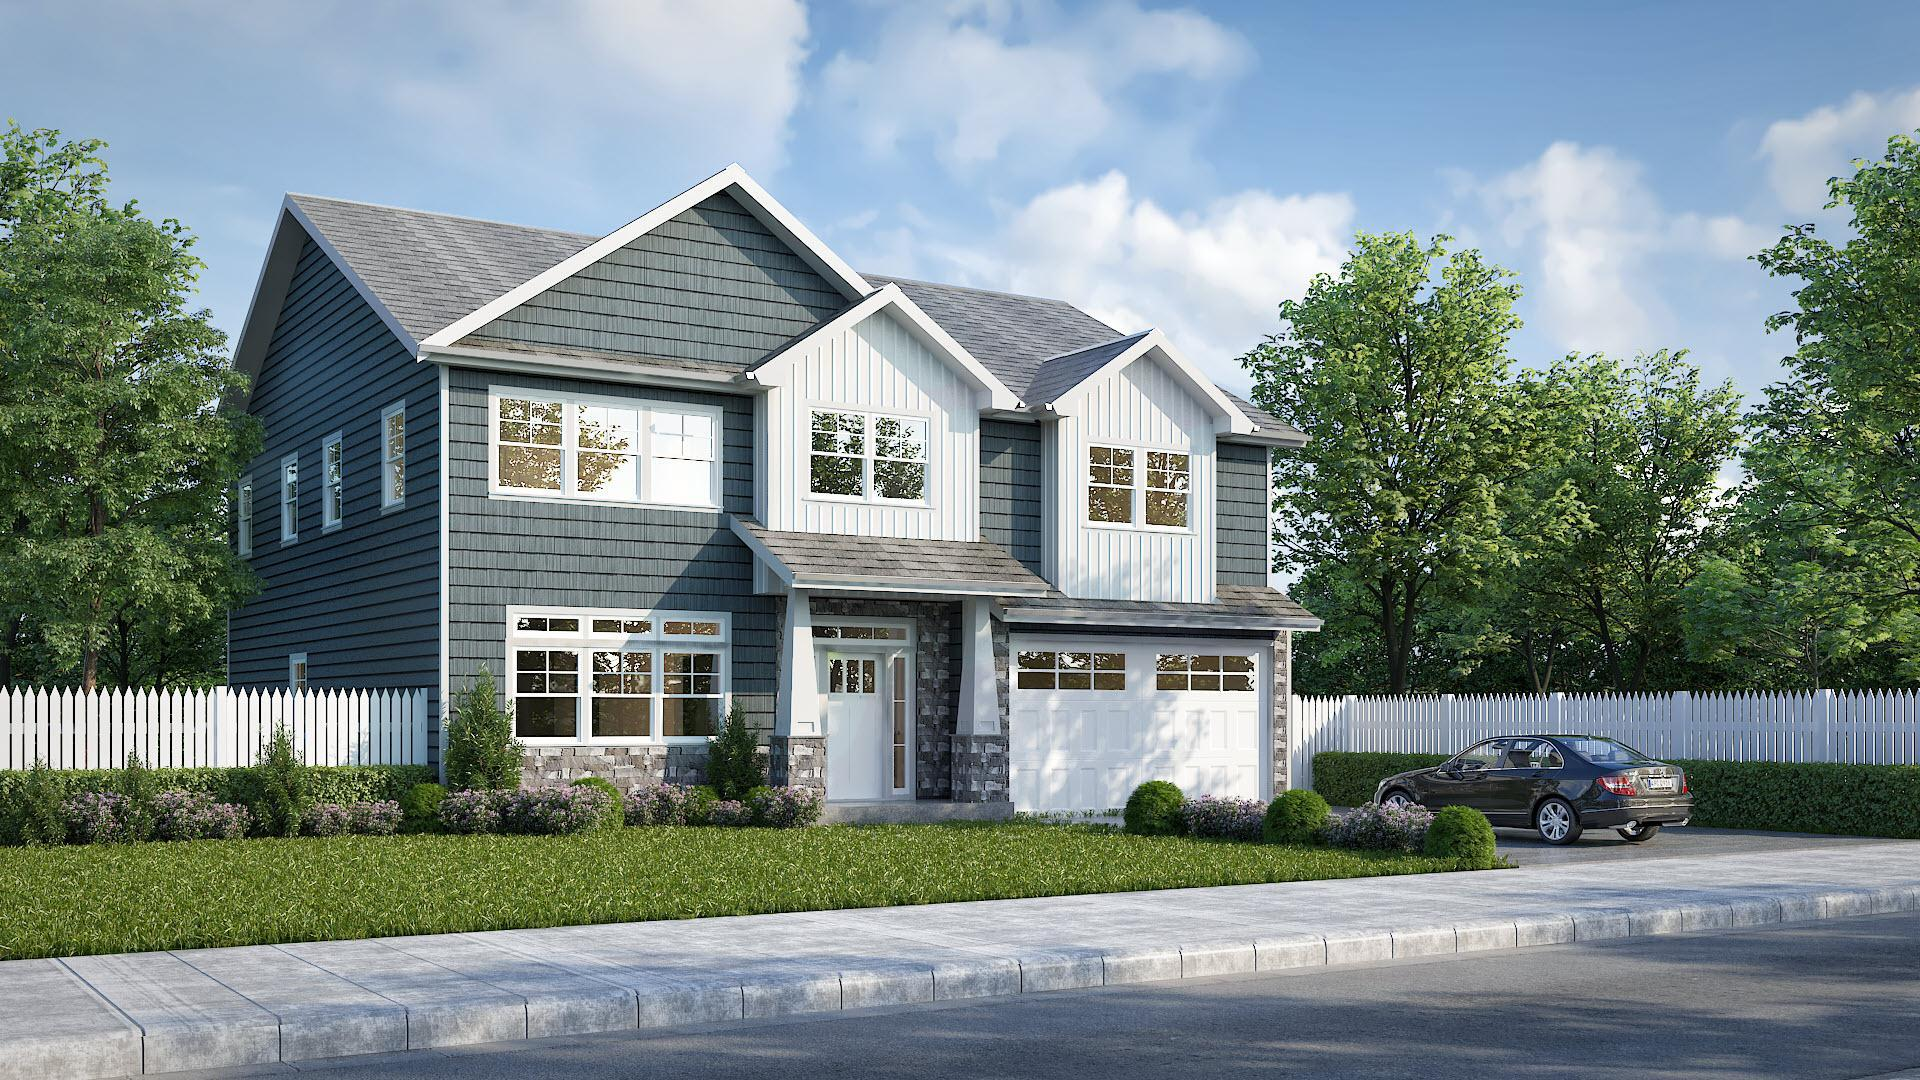 Exterior featured in the 2962-2 (Price Assumes Average Lot Cost Of $500,000)